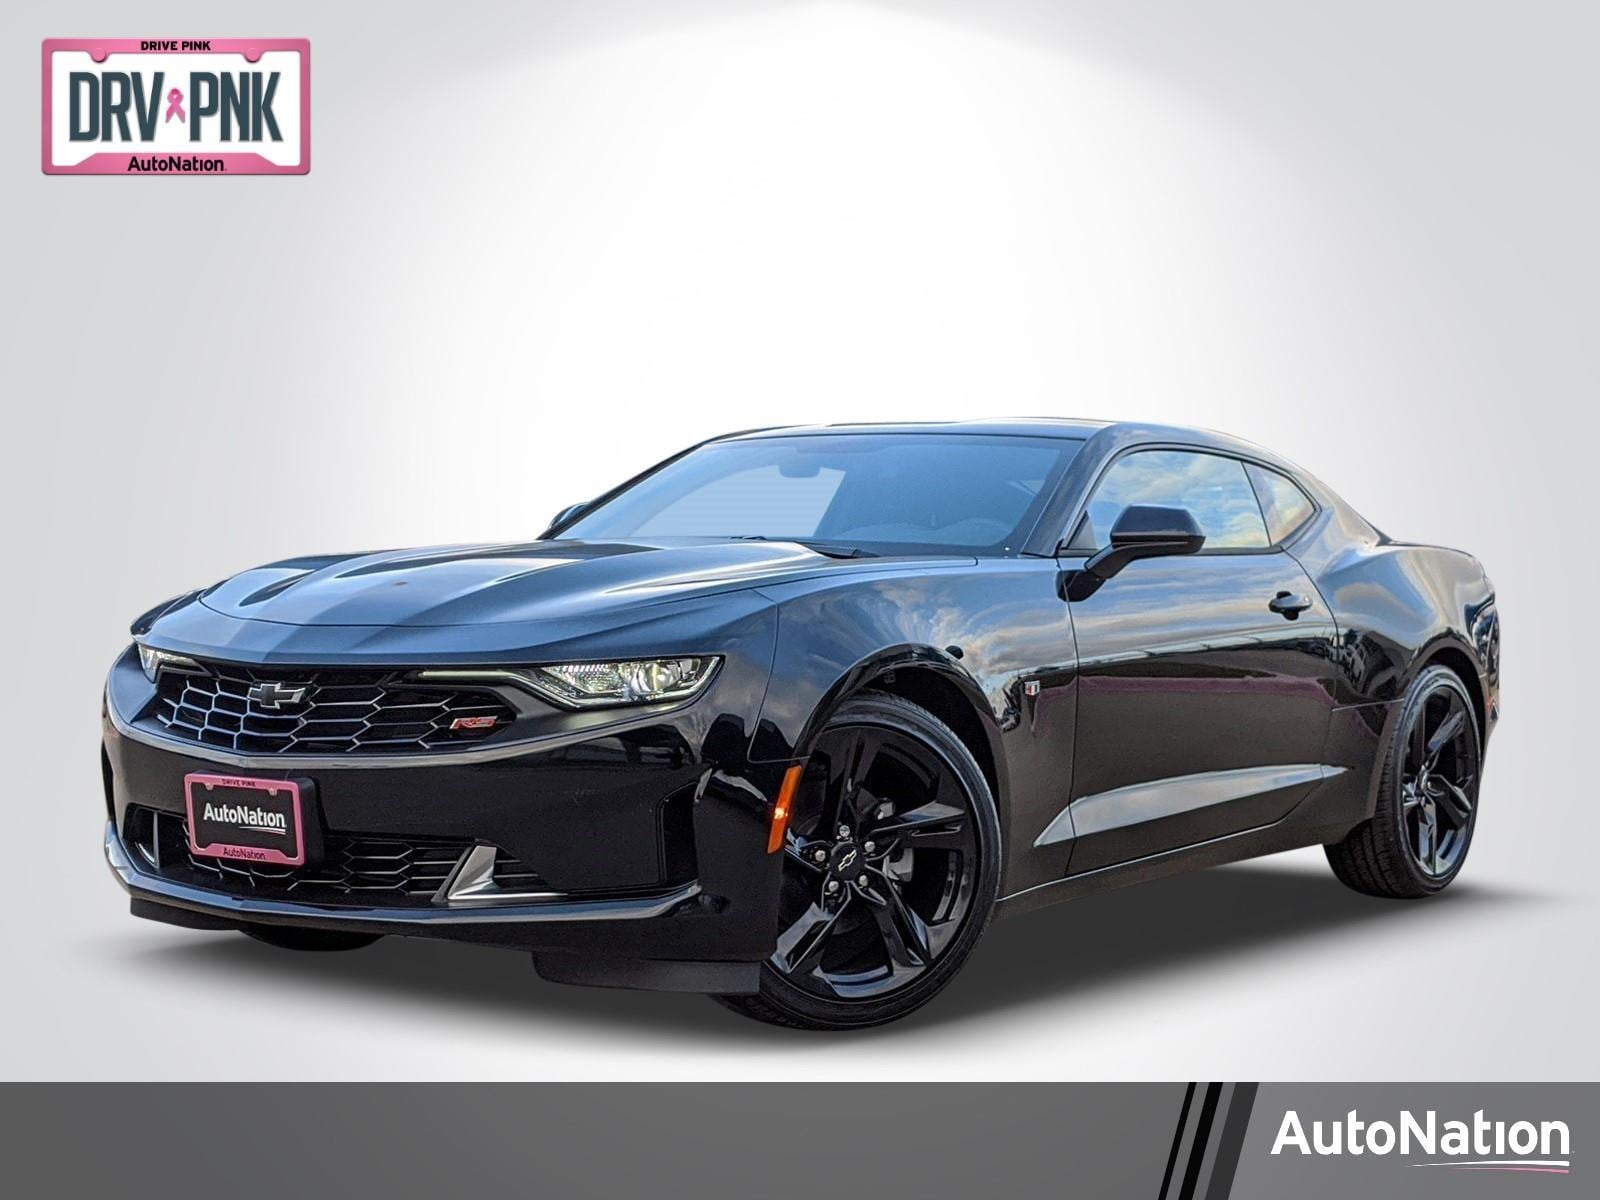 Autonation Amarillo Tx >> 1g1fb1rs1l0113922 2020 Chevrolet Camaro For Sale In Amarillo